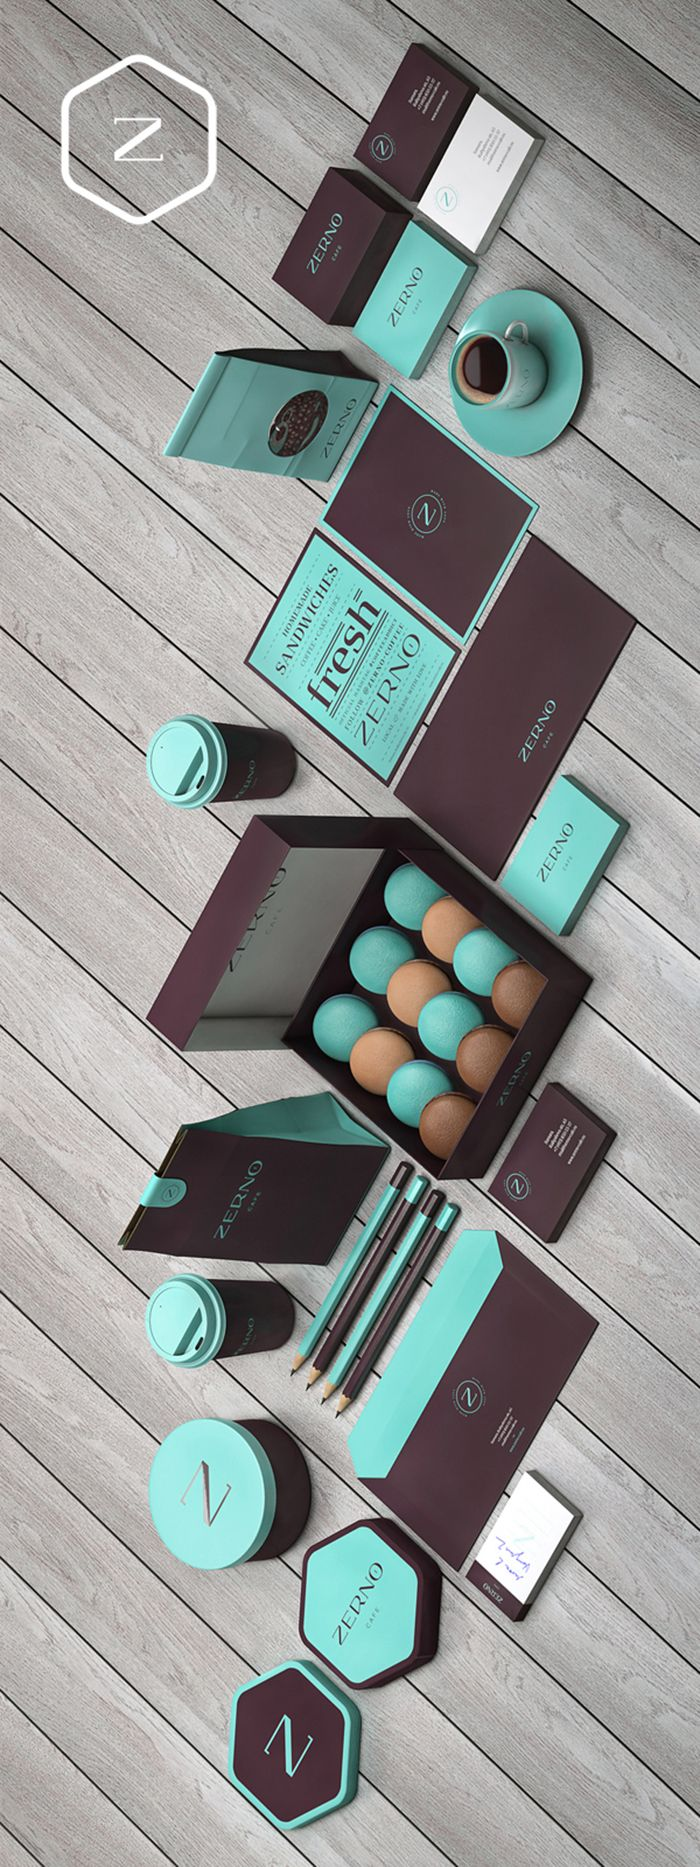 Zerno - Daily Package Design Inspiration